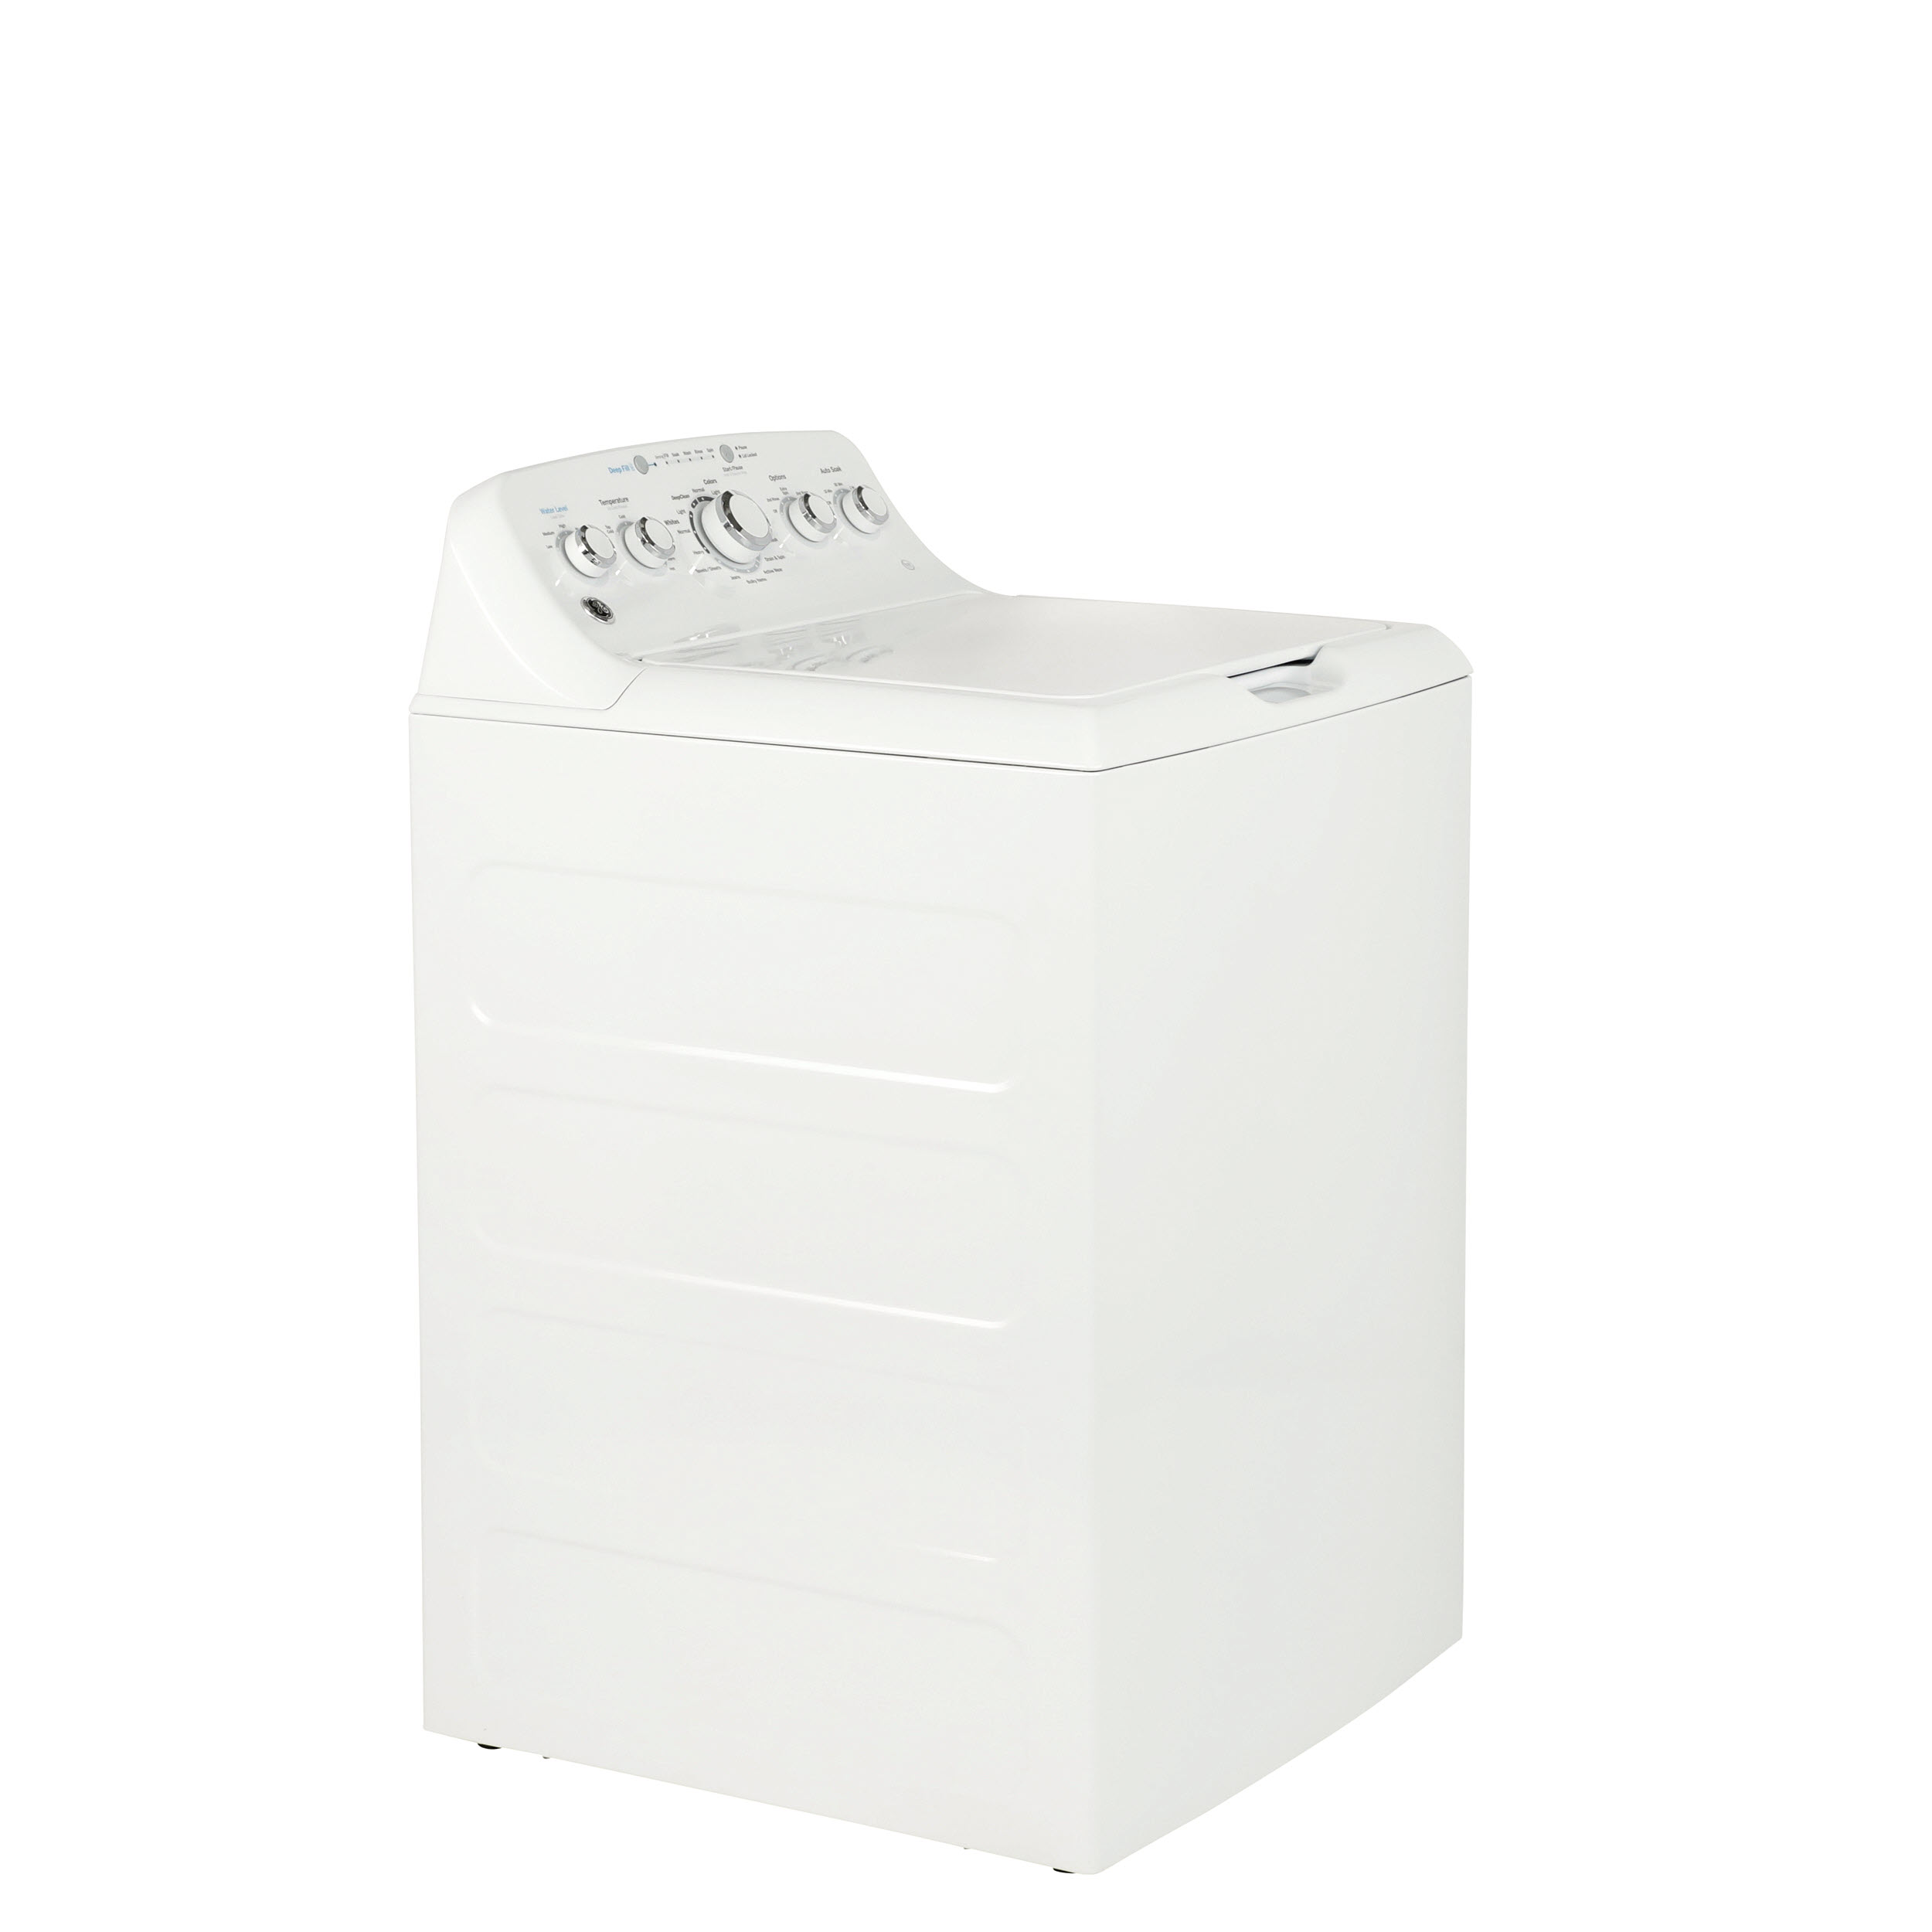 Model: GTW465ASNWW | GE GE® 4.5 cu. ft. Capacity Washer with Stainless Steel Basket